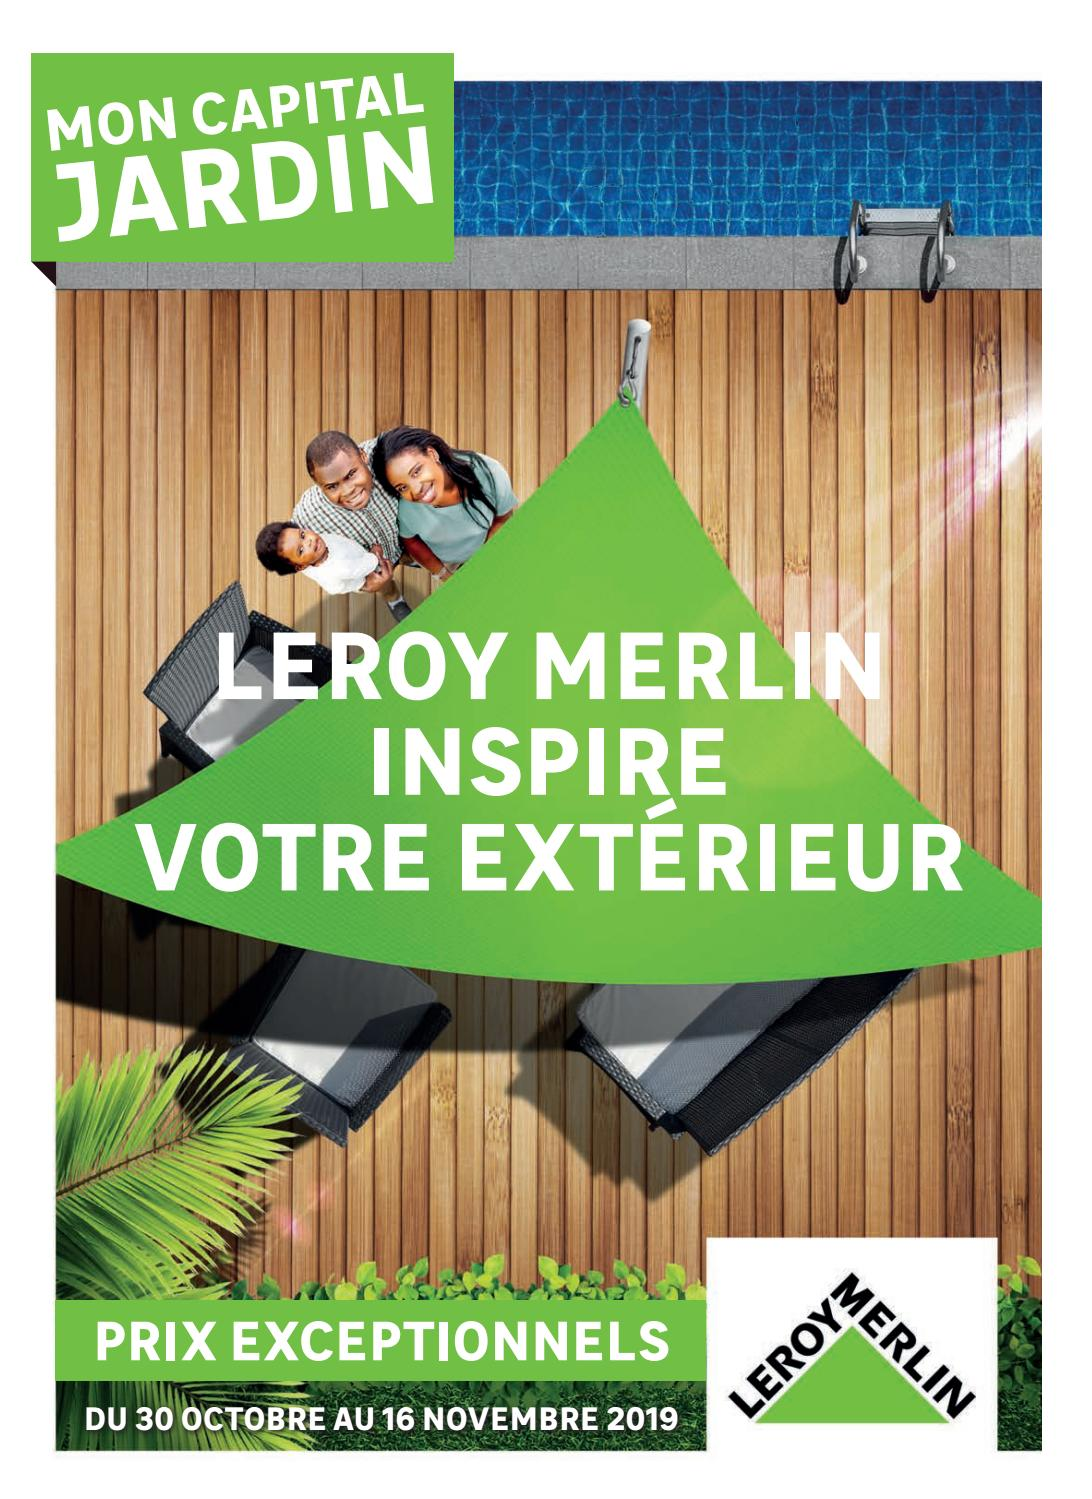 Leroy Merlin Inspire Votre Exterieur By Agencecourtcircuit Issuu